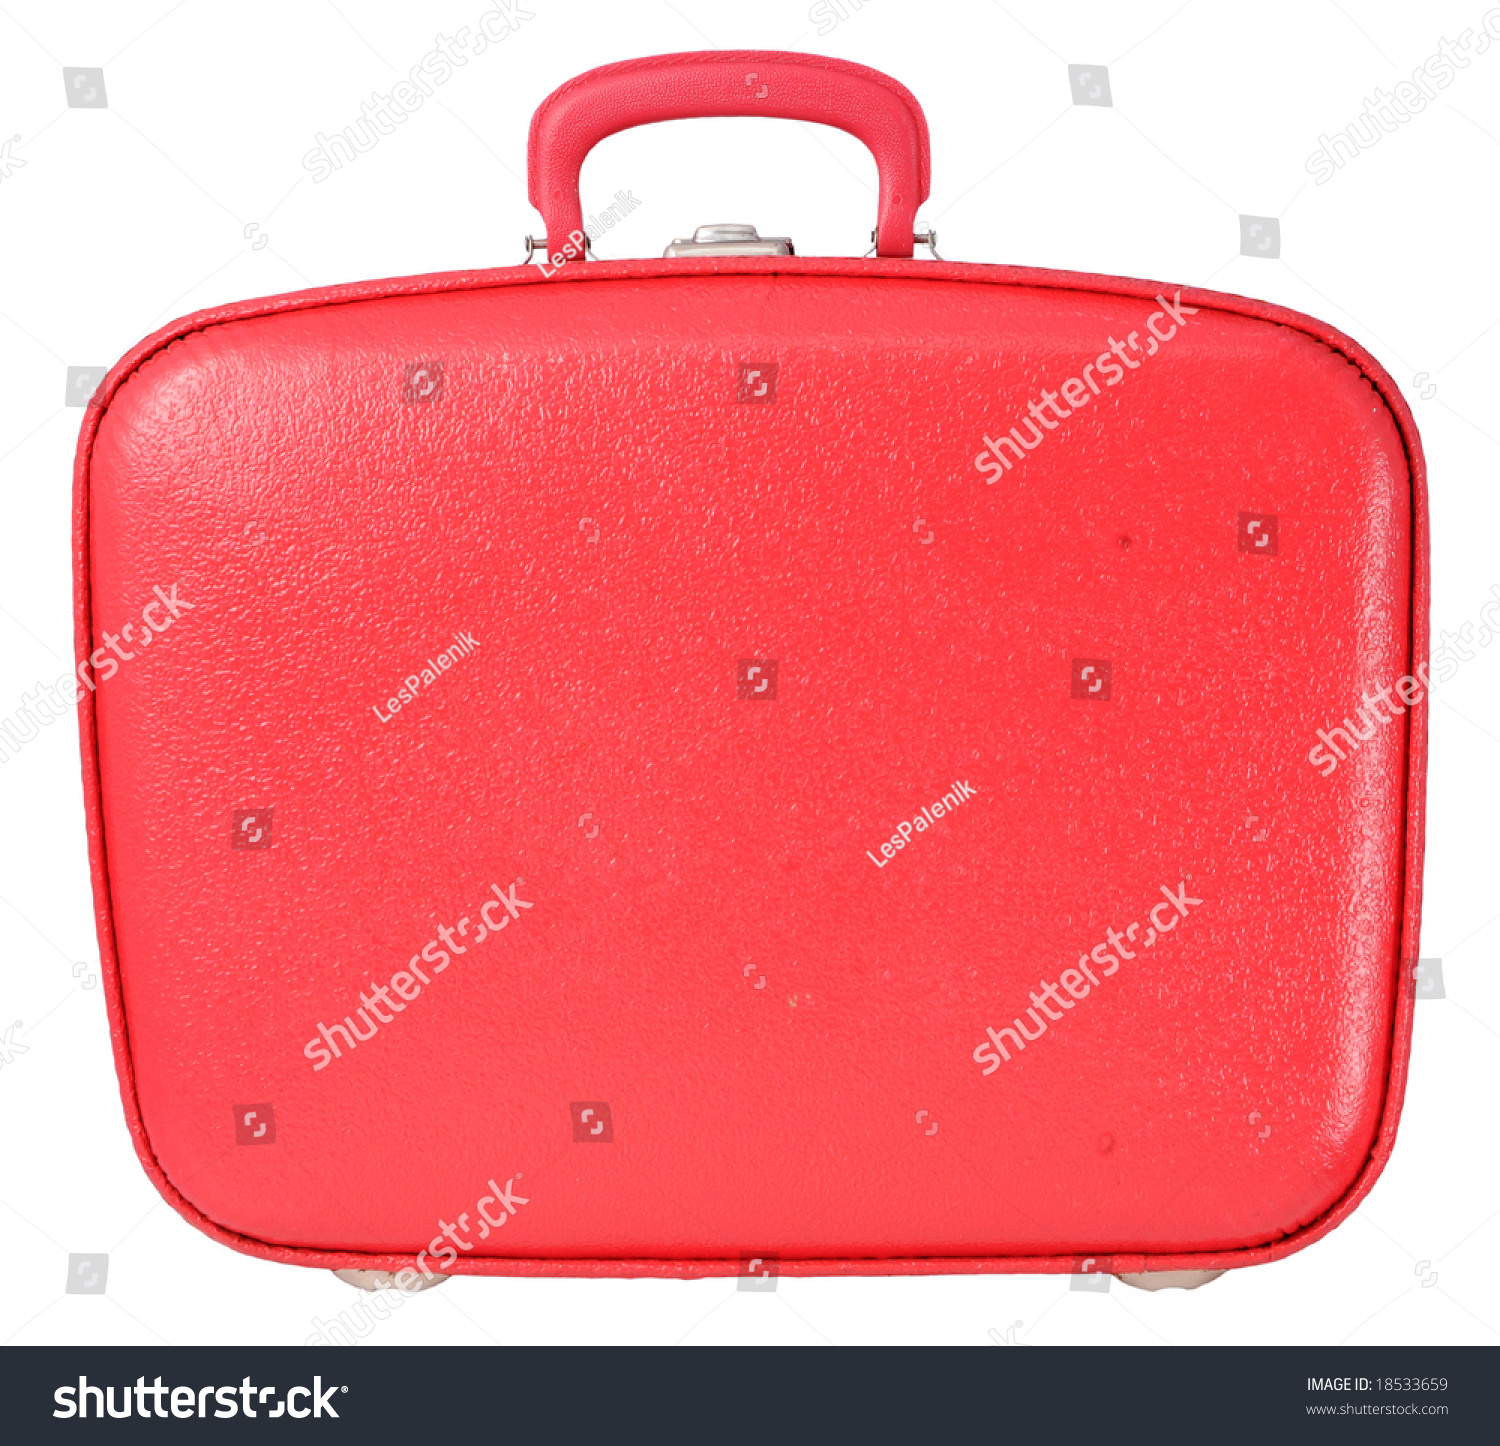 Red Vintage Suitcase Stock Photo 18533659 - Shutterstock